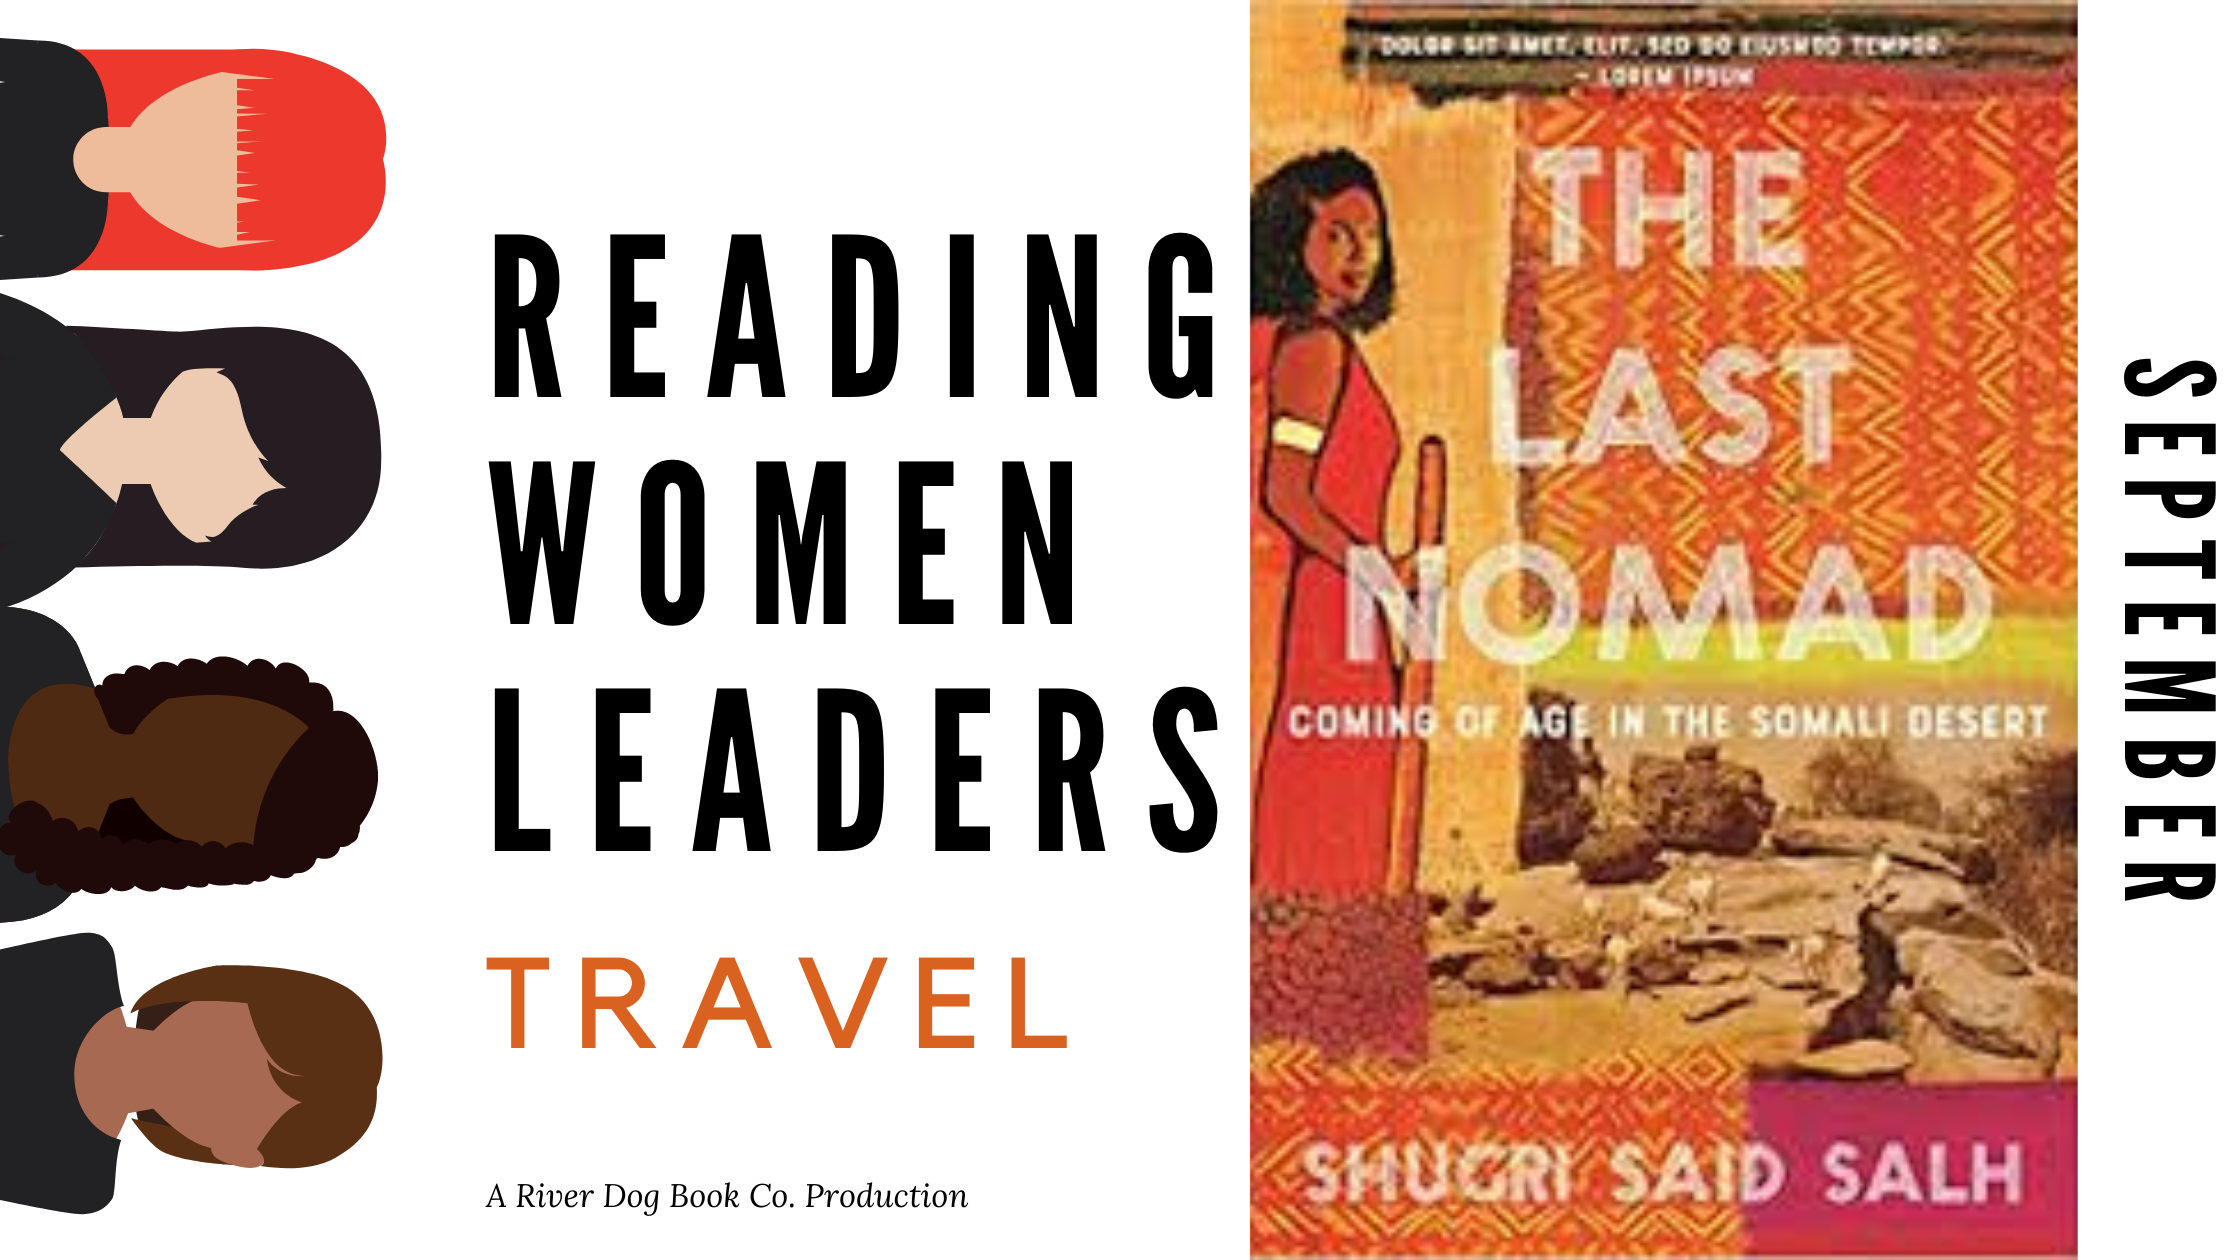 Reading Women Leaders: Travel